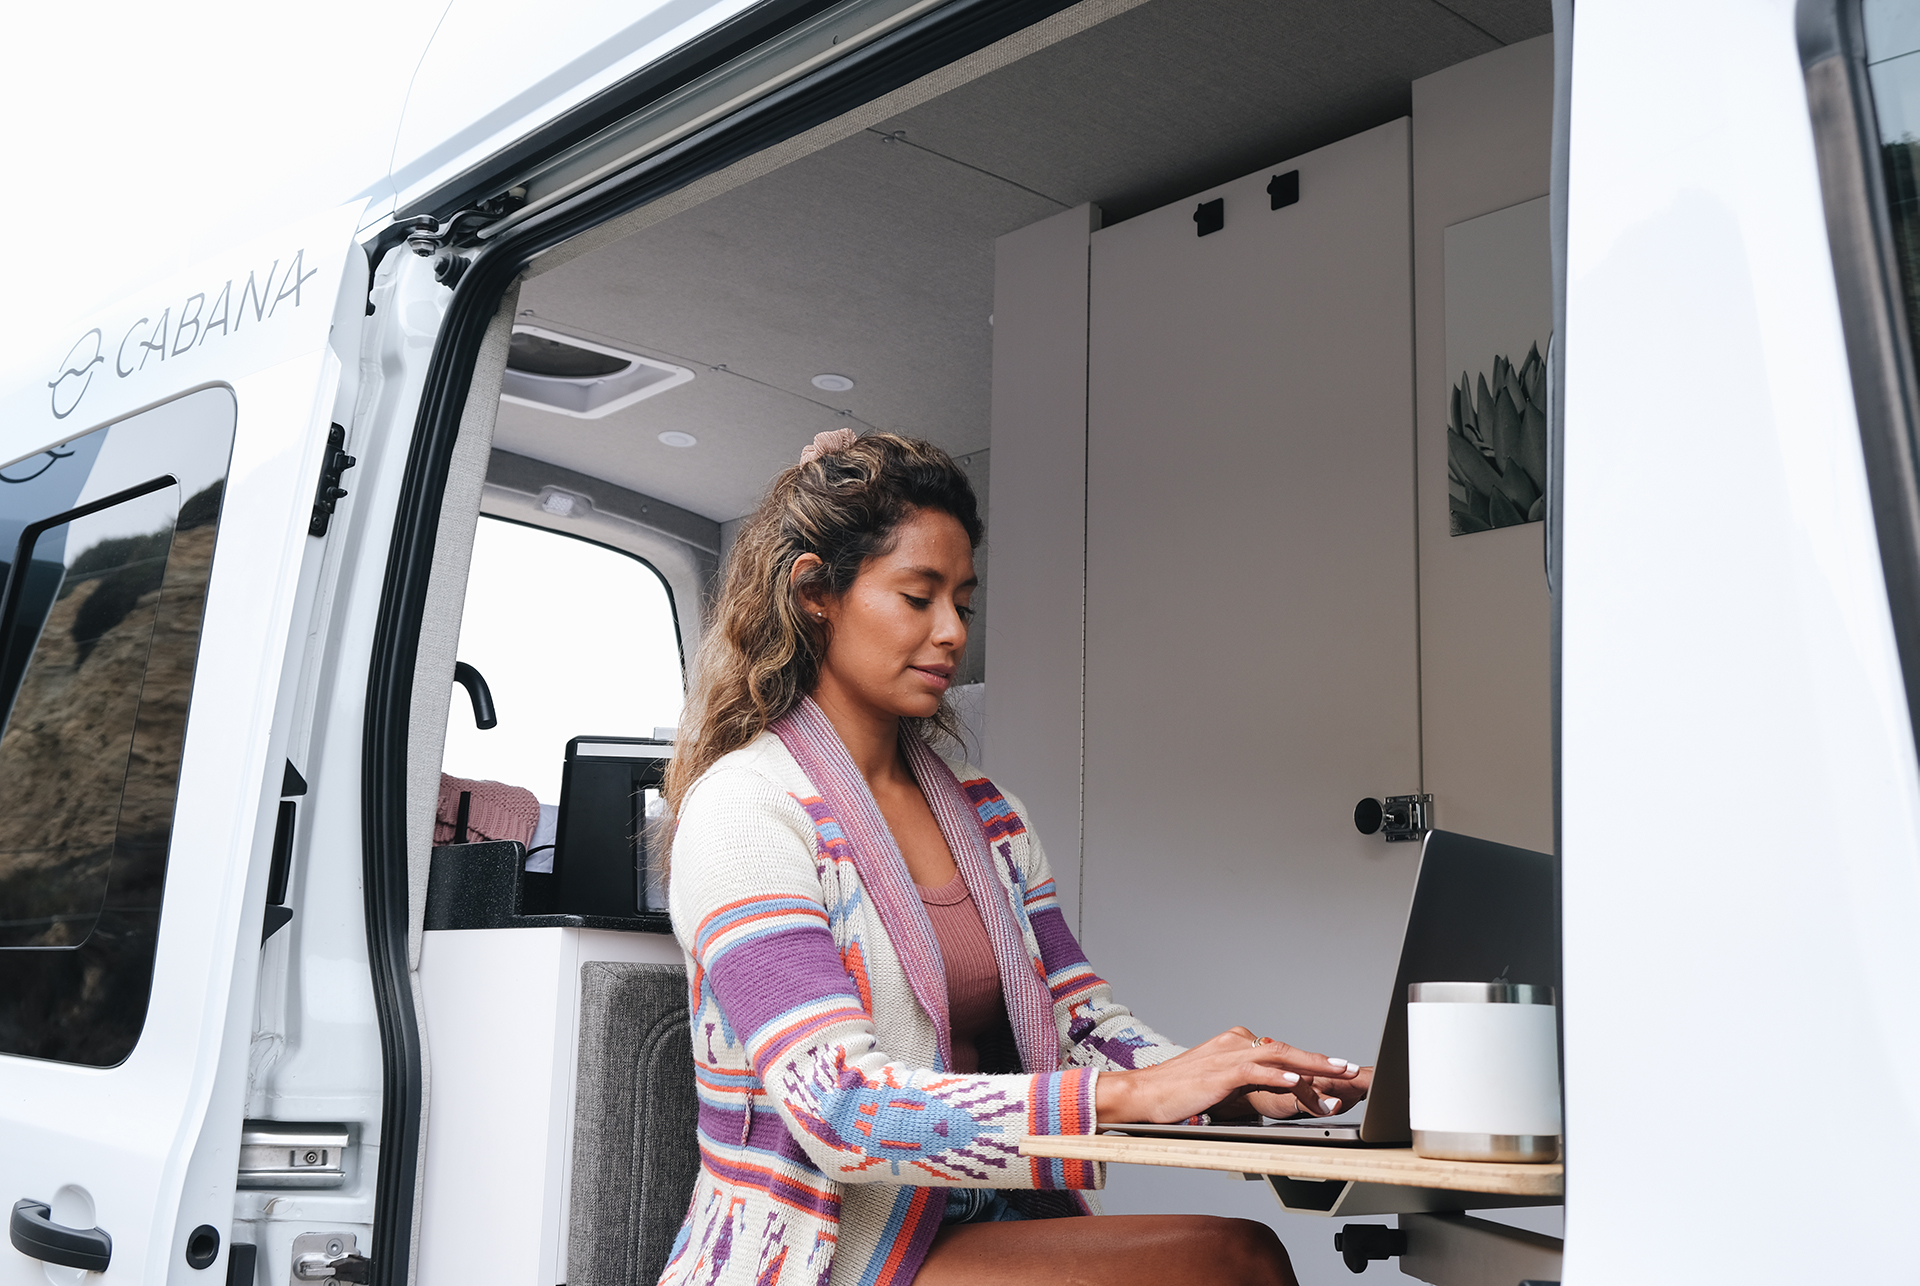 woman working at laptop inside van